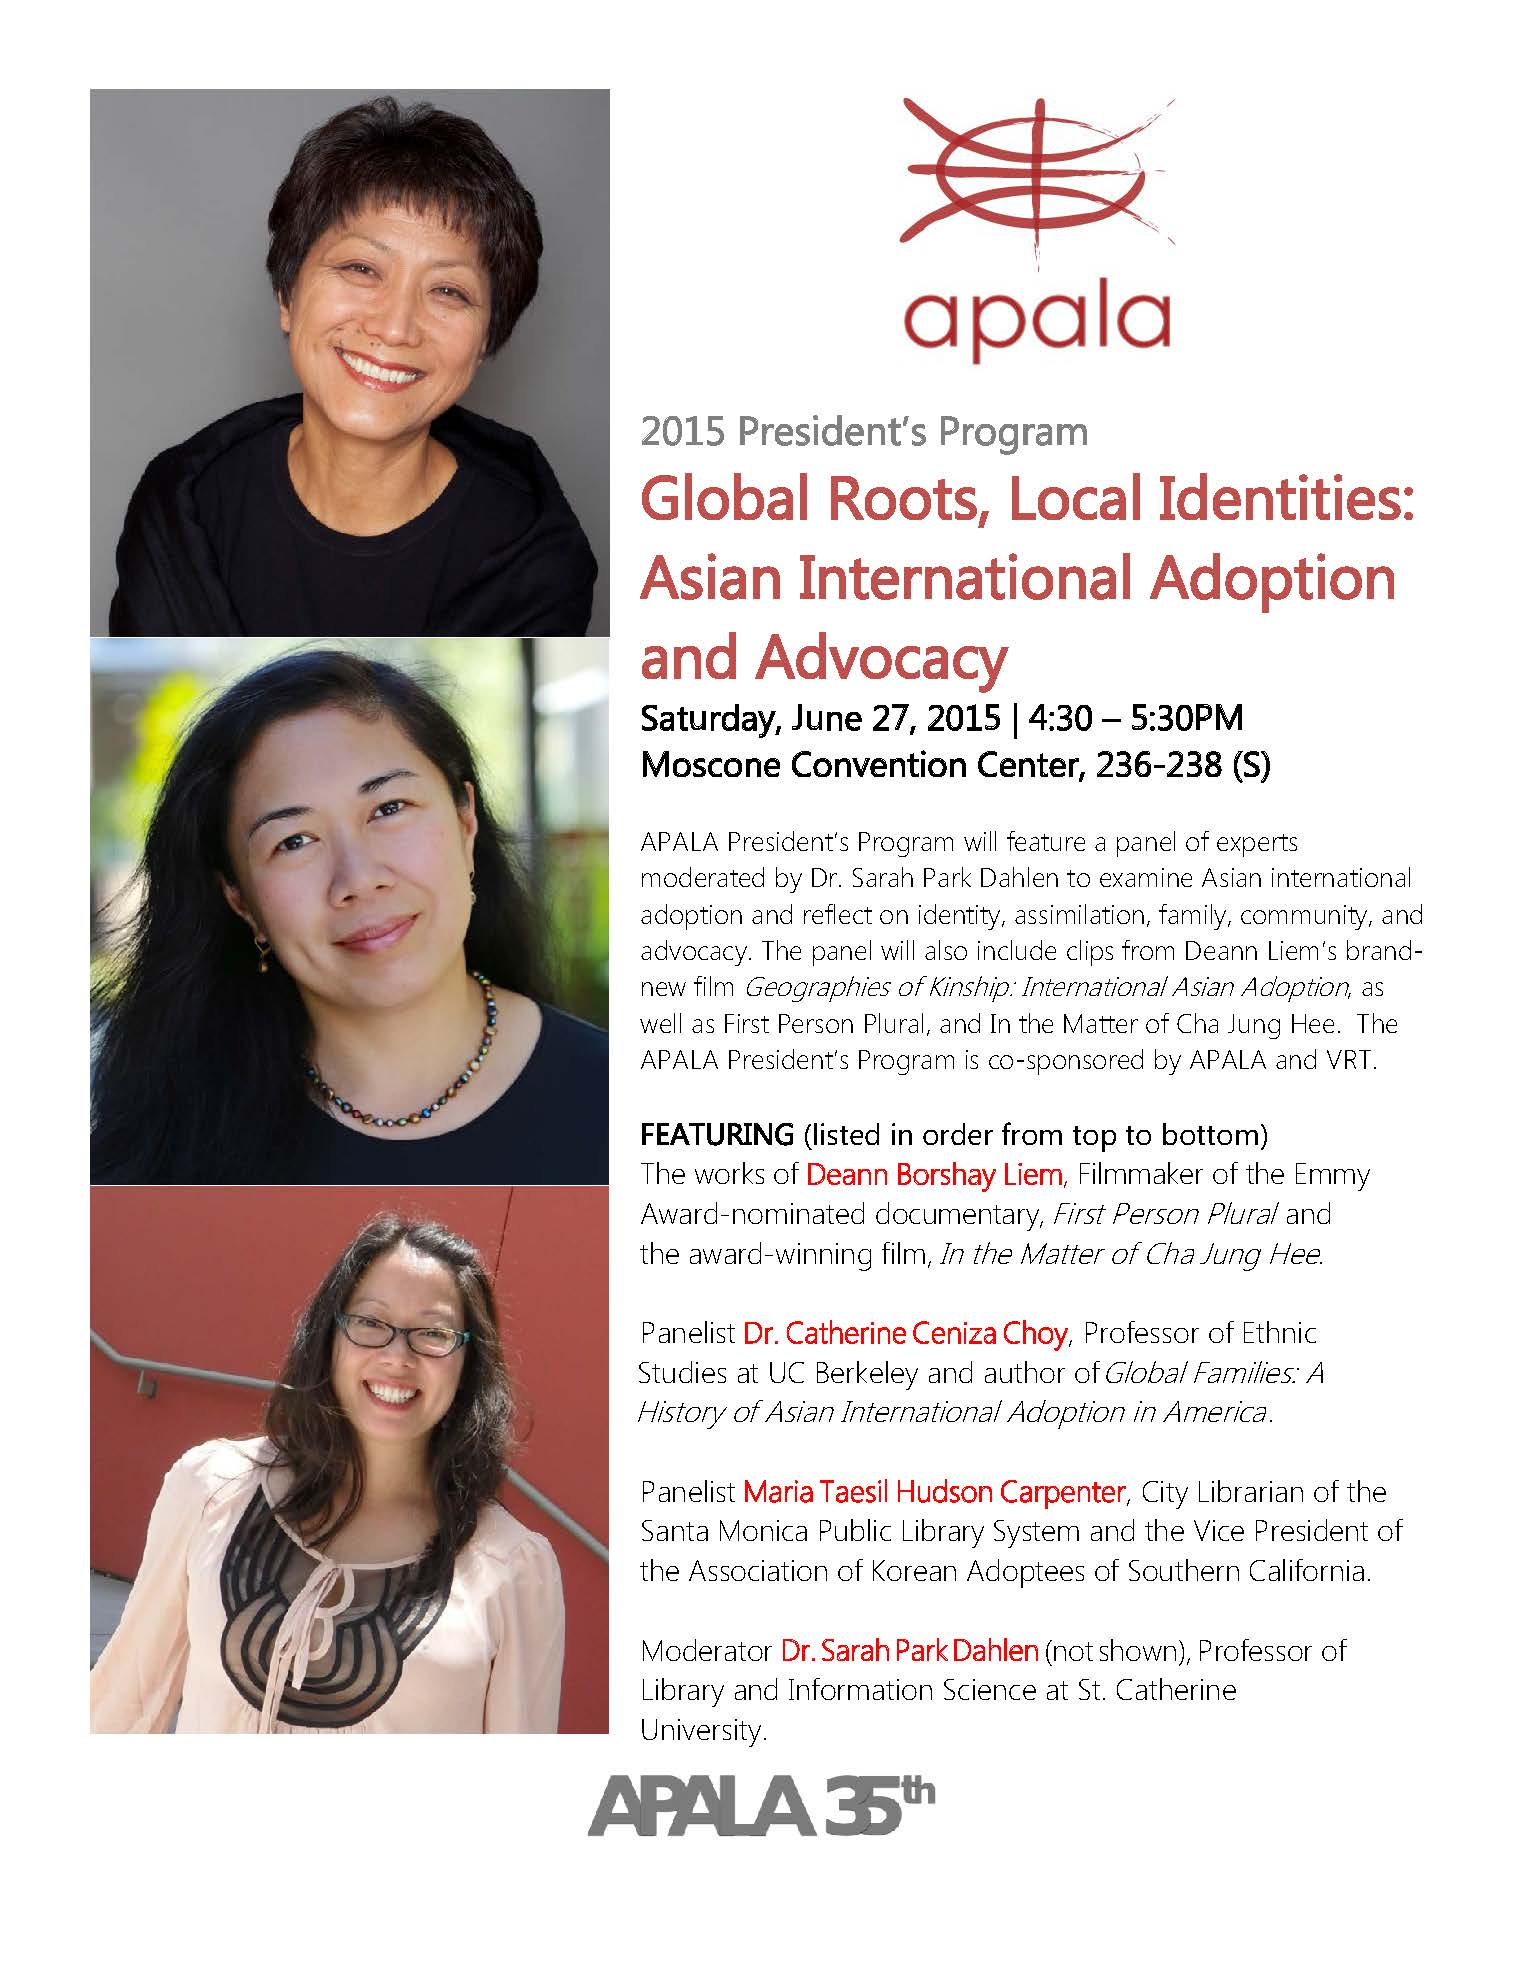 Image of 2015 APALA President's Program at ALA Annual 2015 flyer